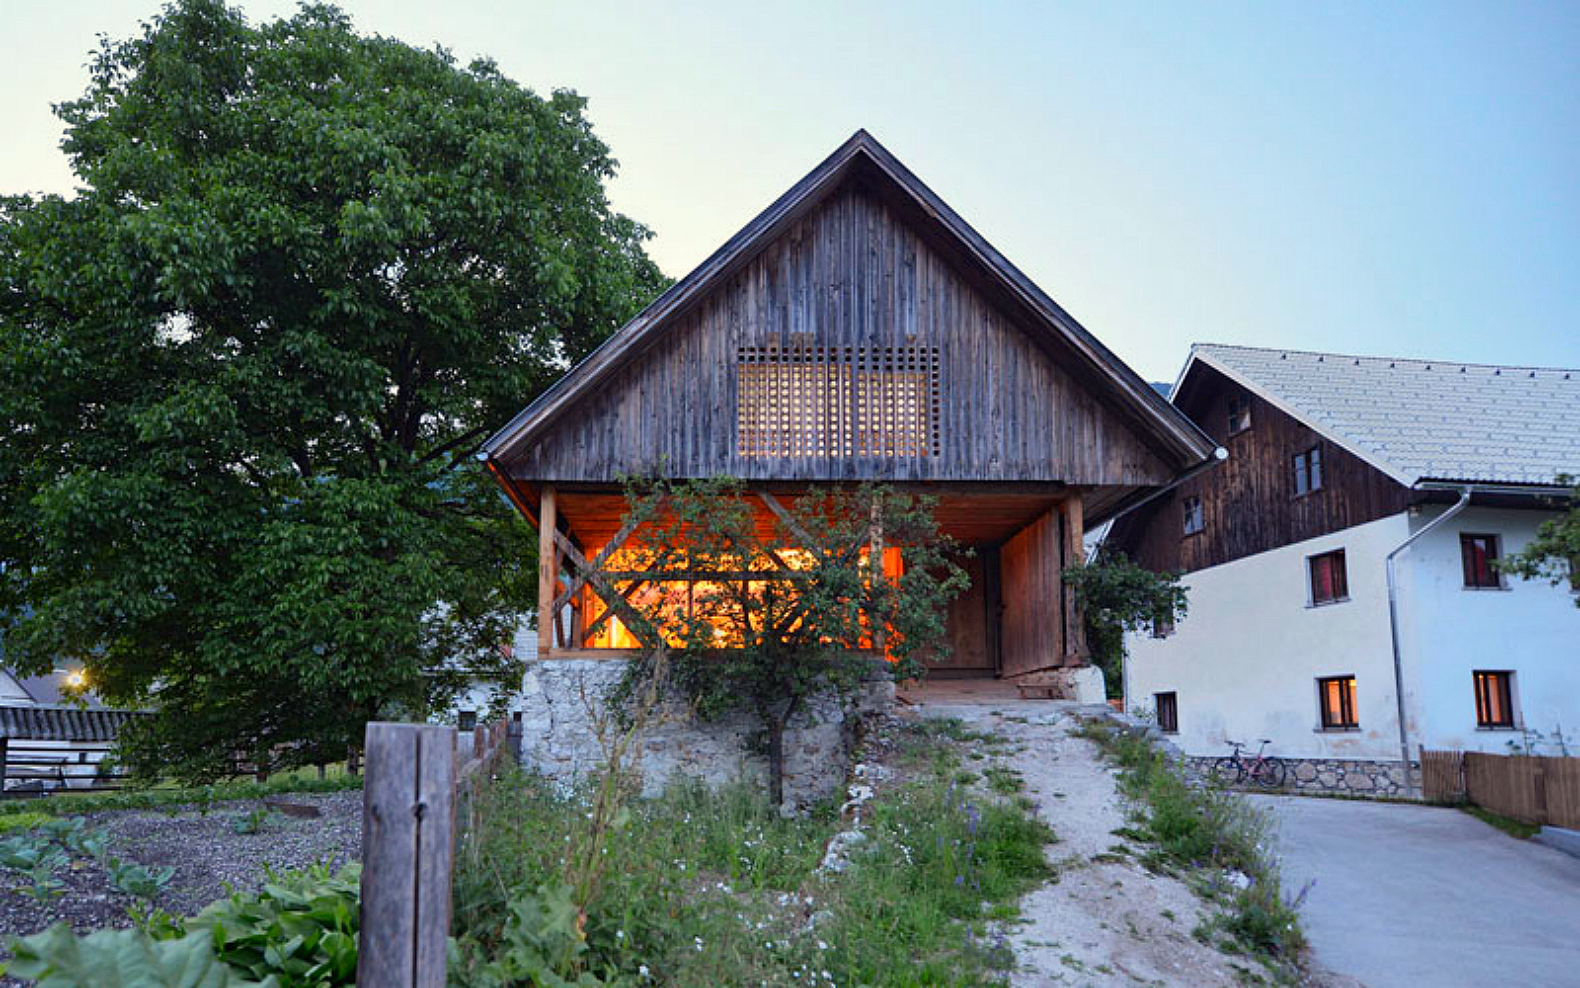 Architecture, locally sourced materials, green design, interior design, repurposed materials, green renovations, barn renovations, barn renovation, ofis architects, moveable walls, Gallery, carousel showcase, barn design, wood architecture, sliding walls, repurposed barns, Ambienti, barn homes, slovenian architecture, green barn renovations, loft designs